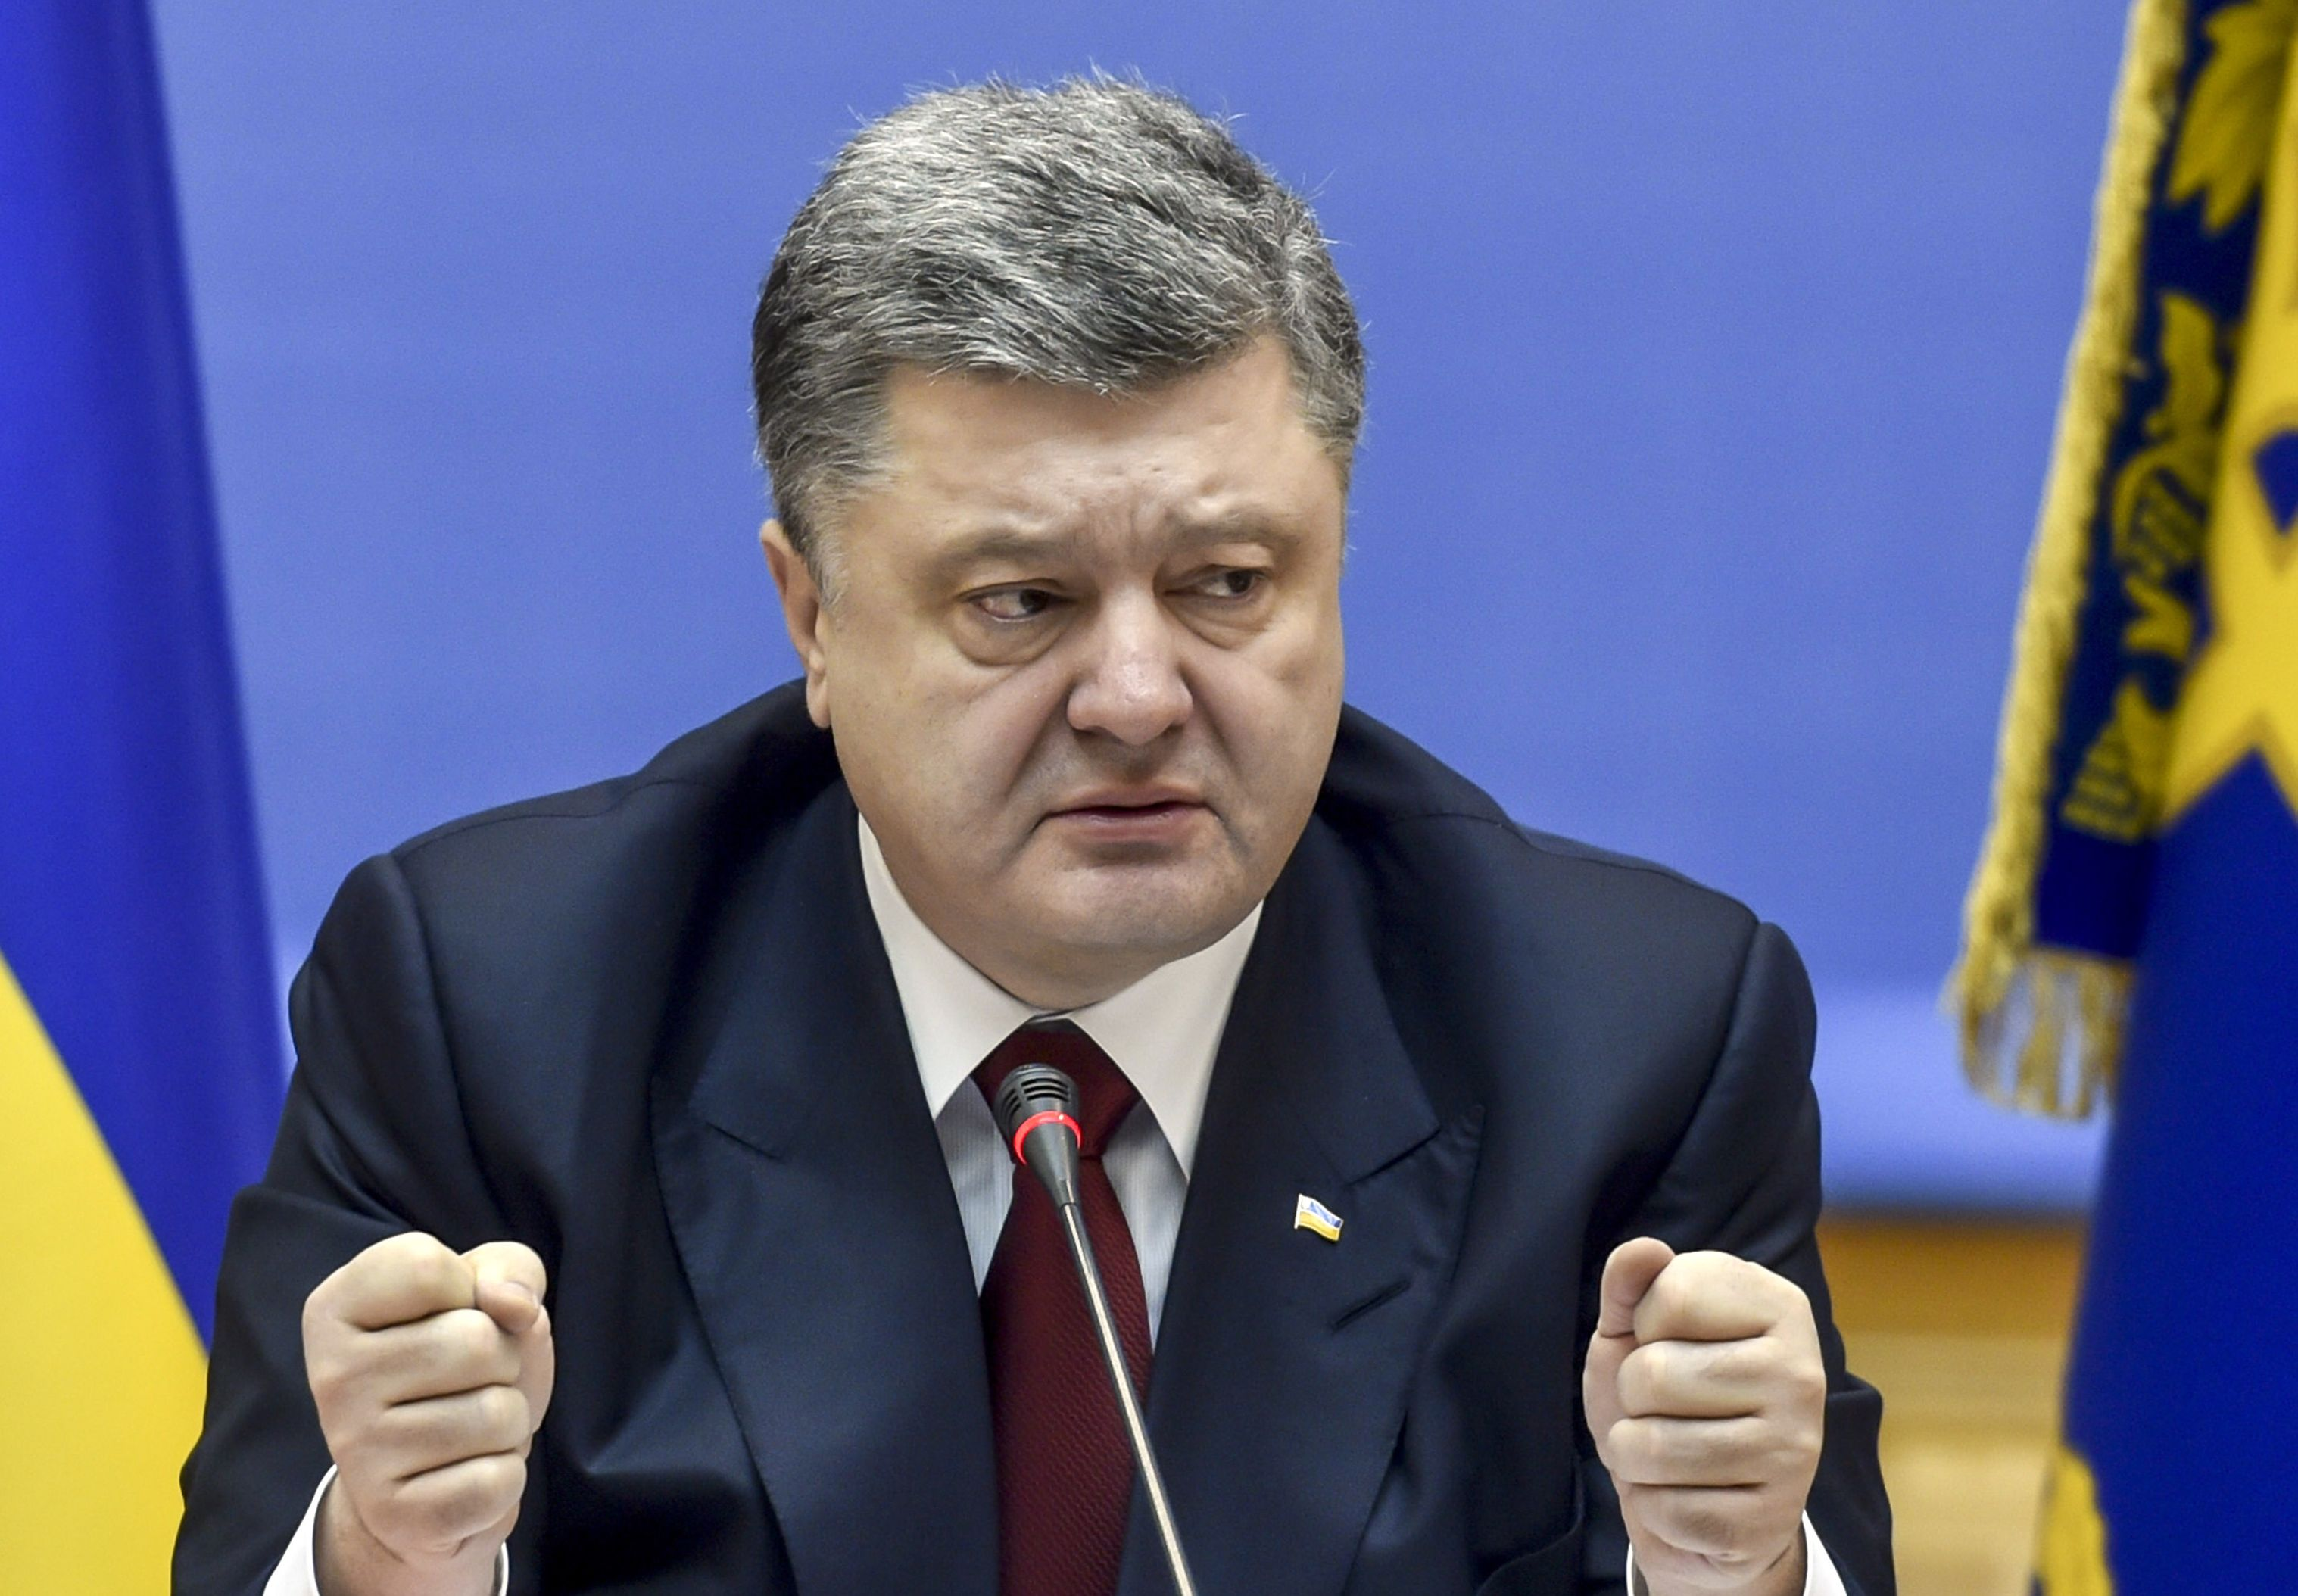 Ukrainian President Petro Poroshenko speaks during a cabinet meeting in Kiev, Ukraine, Wednesday, Feb. 11, 2015. On Wednesday French President Francois Hollande and German Chancellor Angela Merkel will go to the Belarusian capital of Minsk for the crucial talks on conflict in Ukraine's east with the presidents of Russia and Ukraine. (AP Photo/Mykola Lazarenko, Pool)